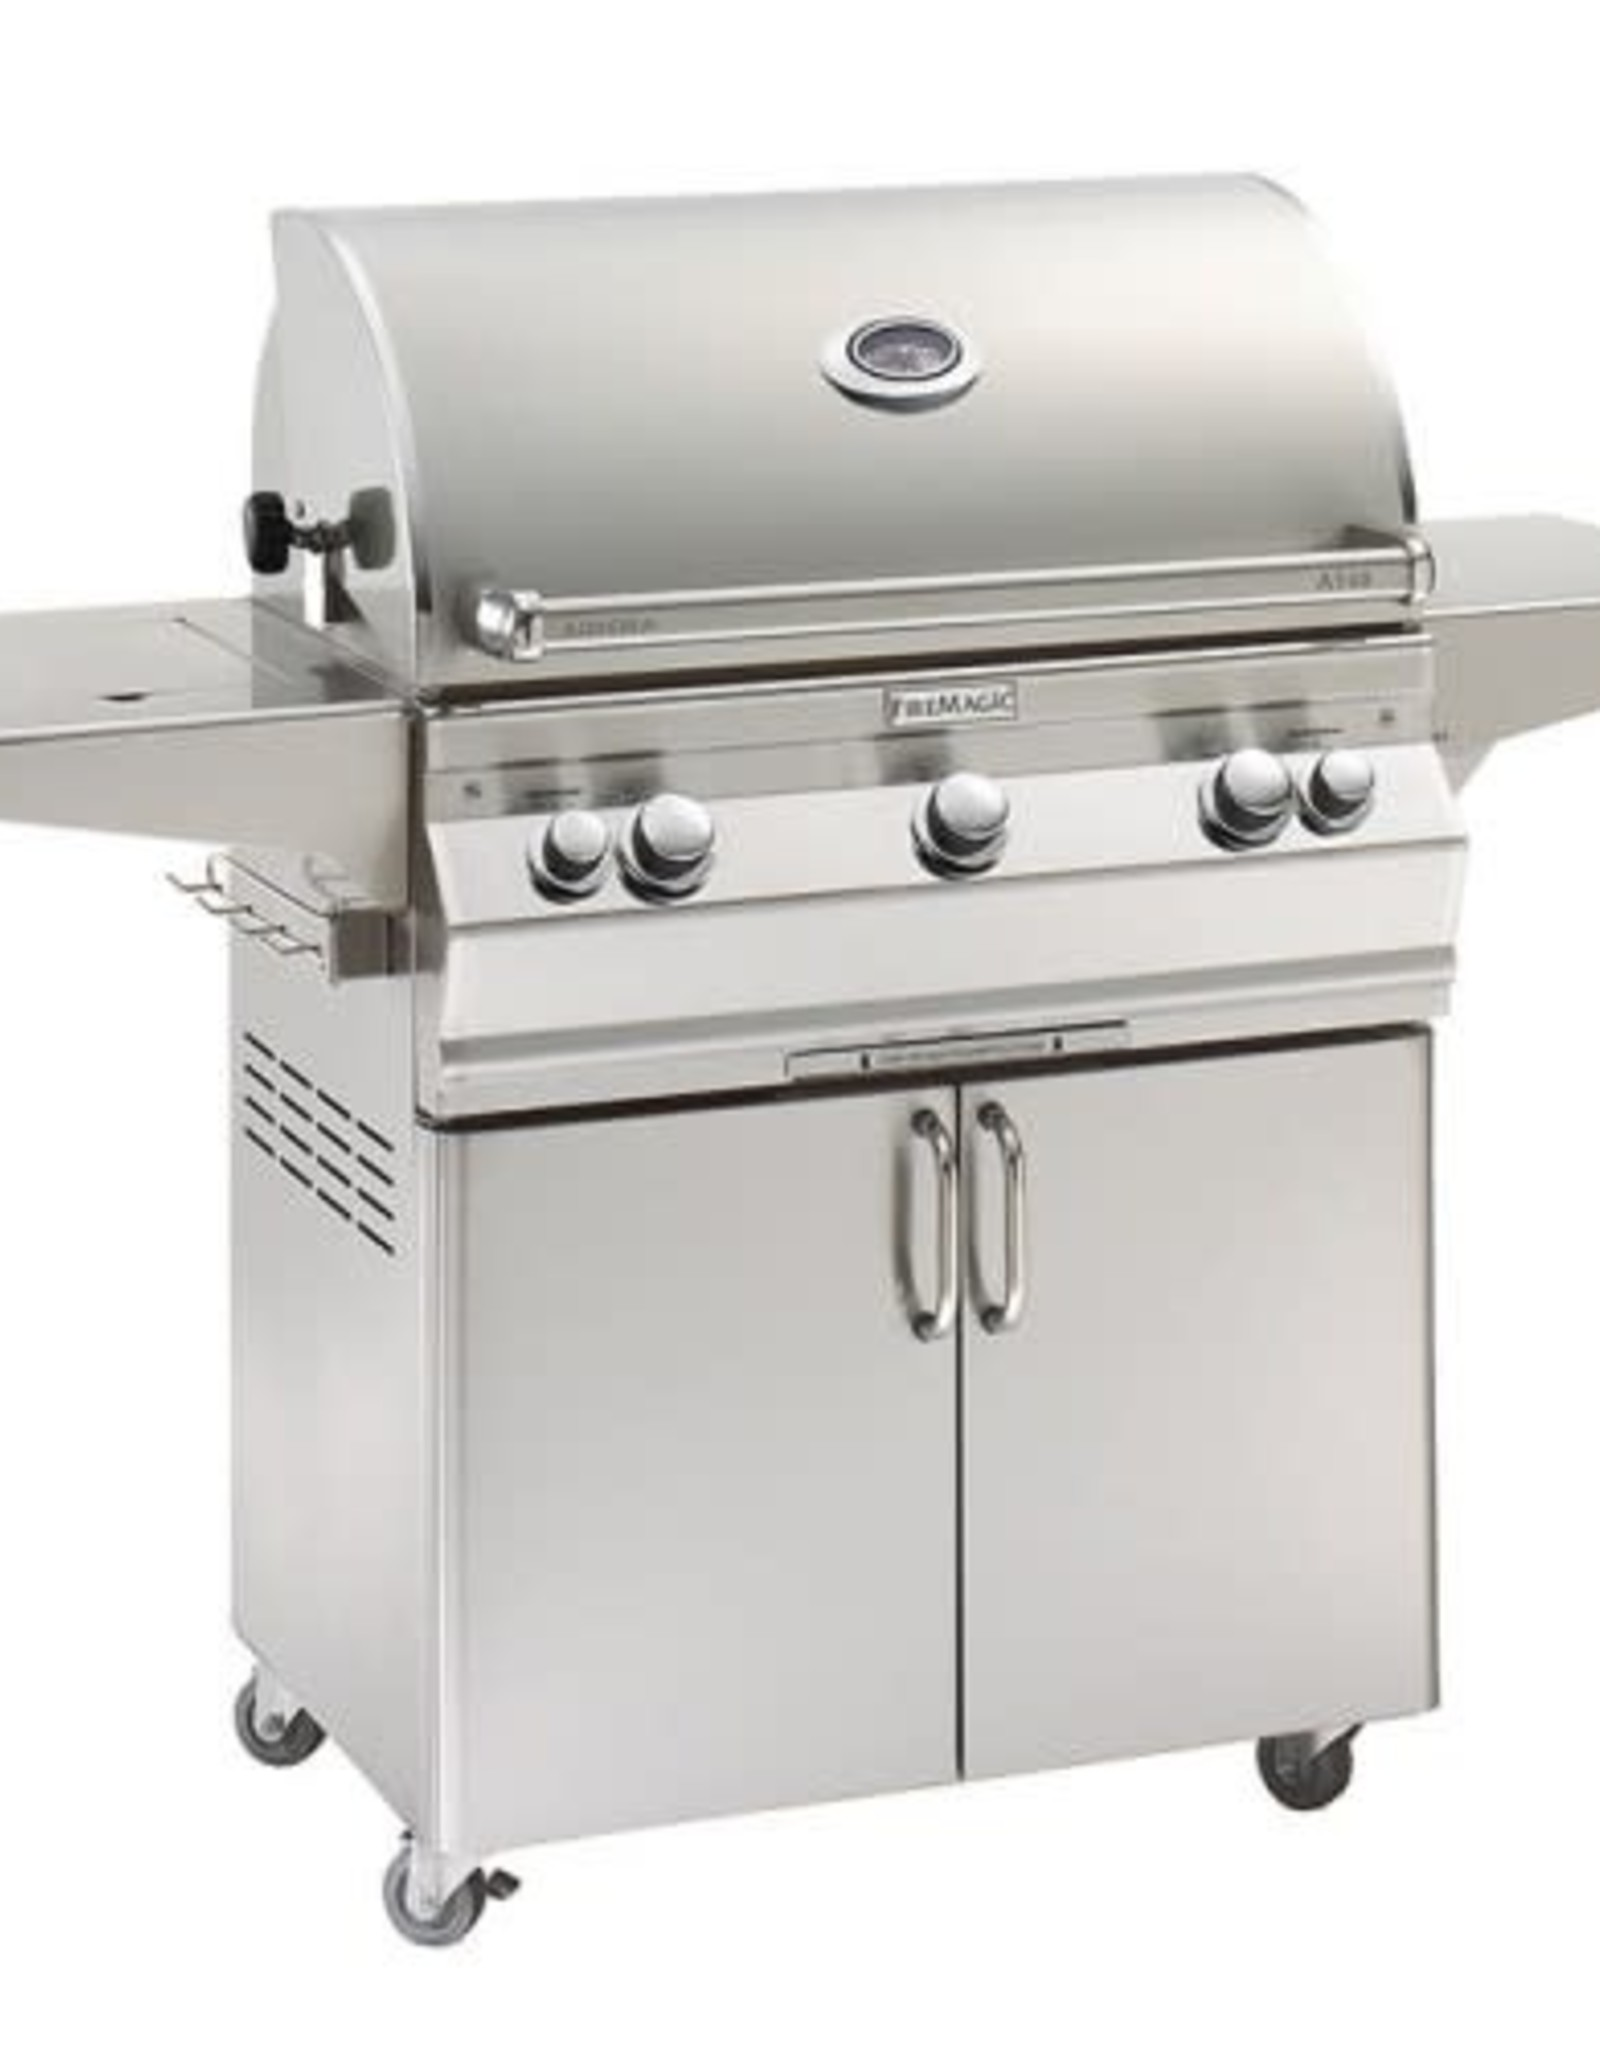 Fire Magic Fire Magic - Aurora A540s 30-inch Portable Grill With Side Burner and Rotisserie